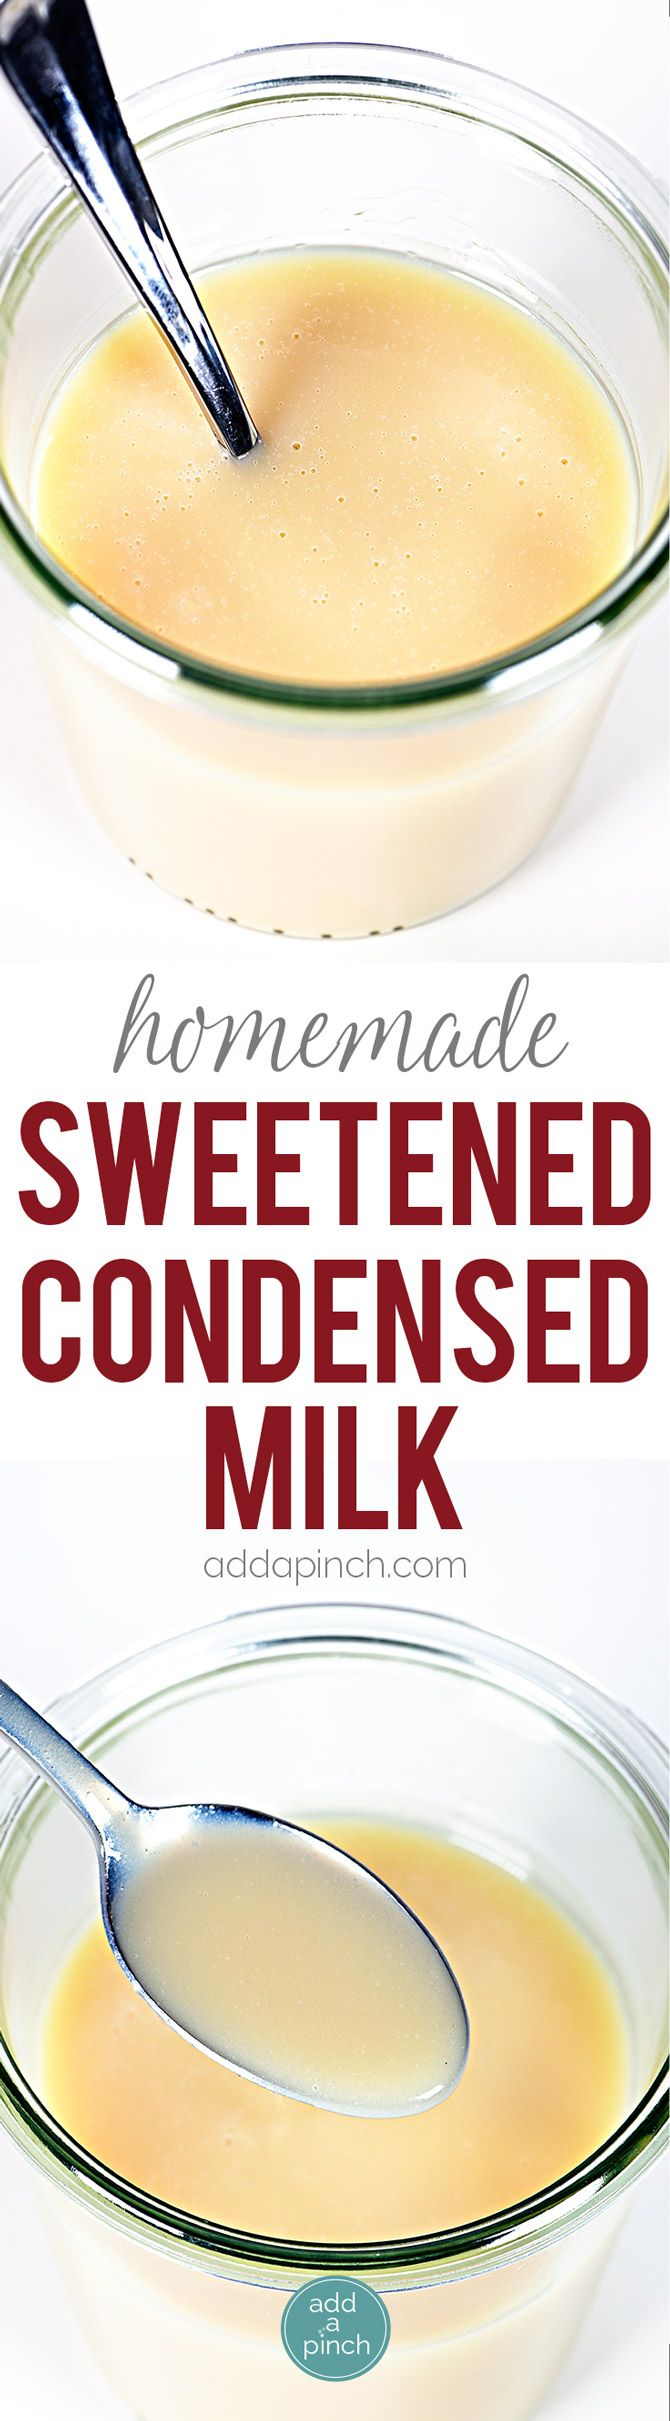 Homemade Sweetened Condensed Milk Recipe - This Homemade Sweetened Condensed Milk recipe makes a delicious, made from scratch version of sweetened condensed milk that you can use in coffee, baking, ice cream and more! // addapinch.com